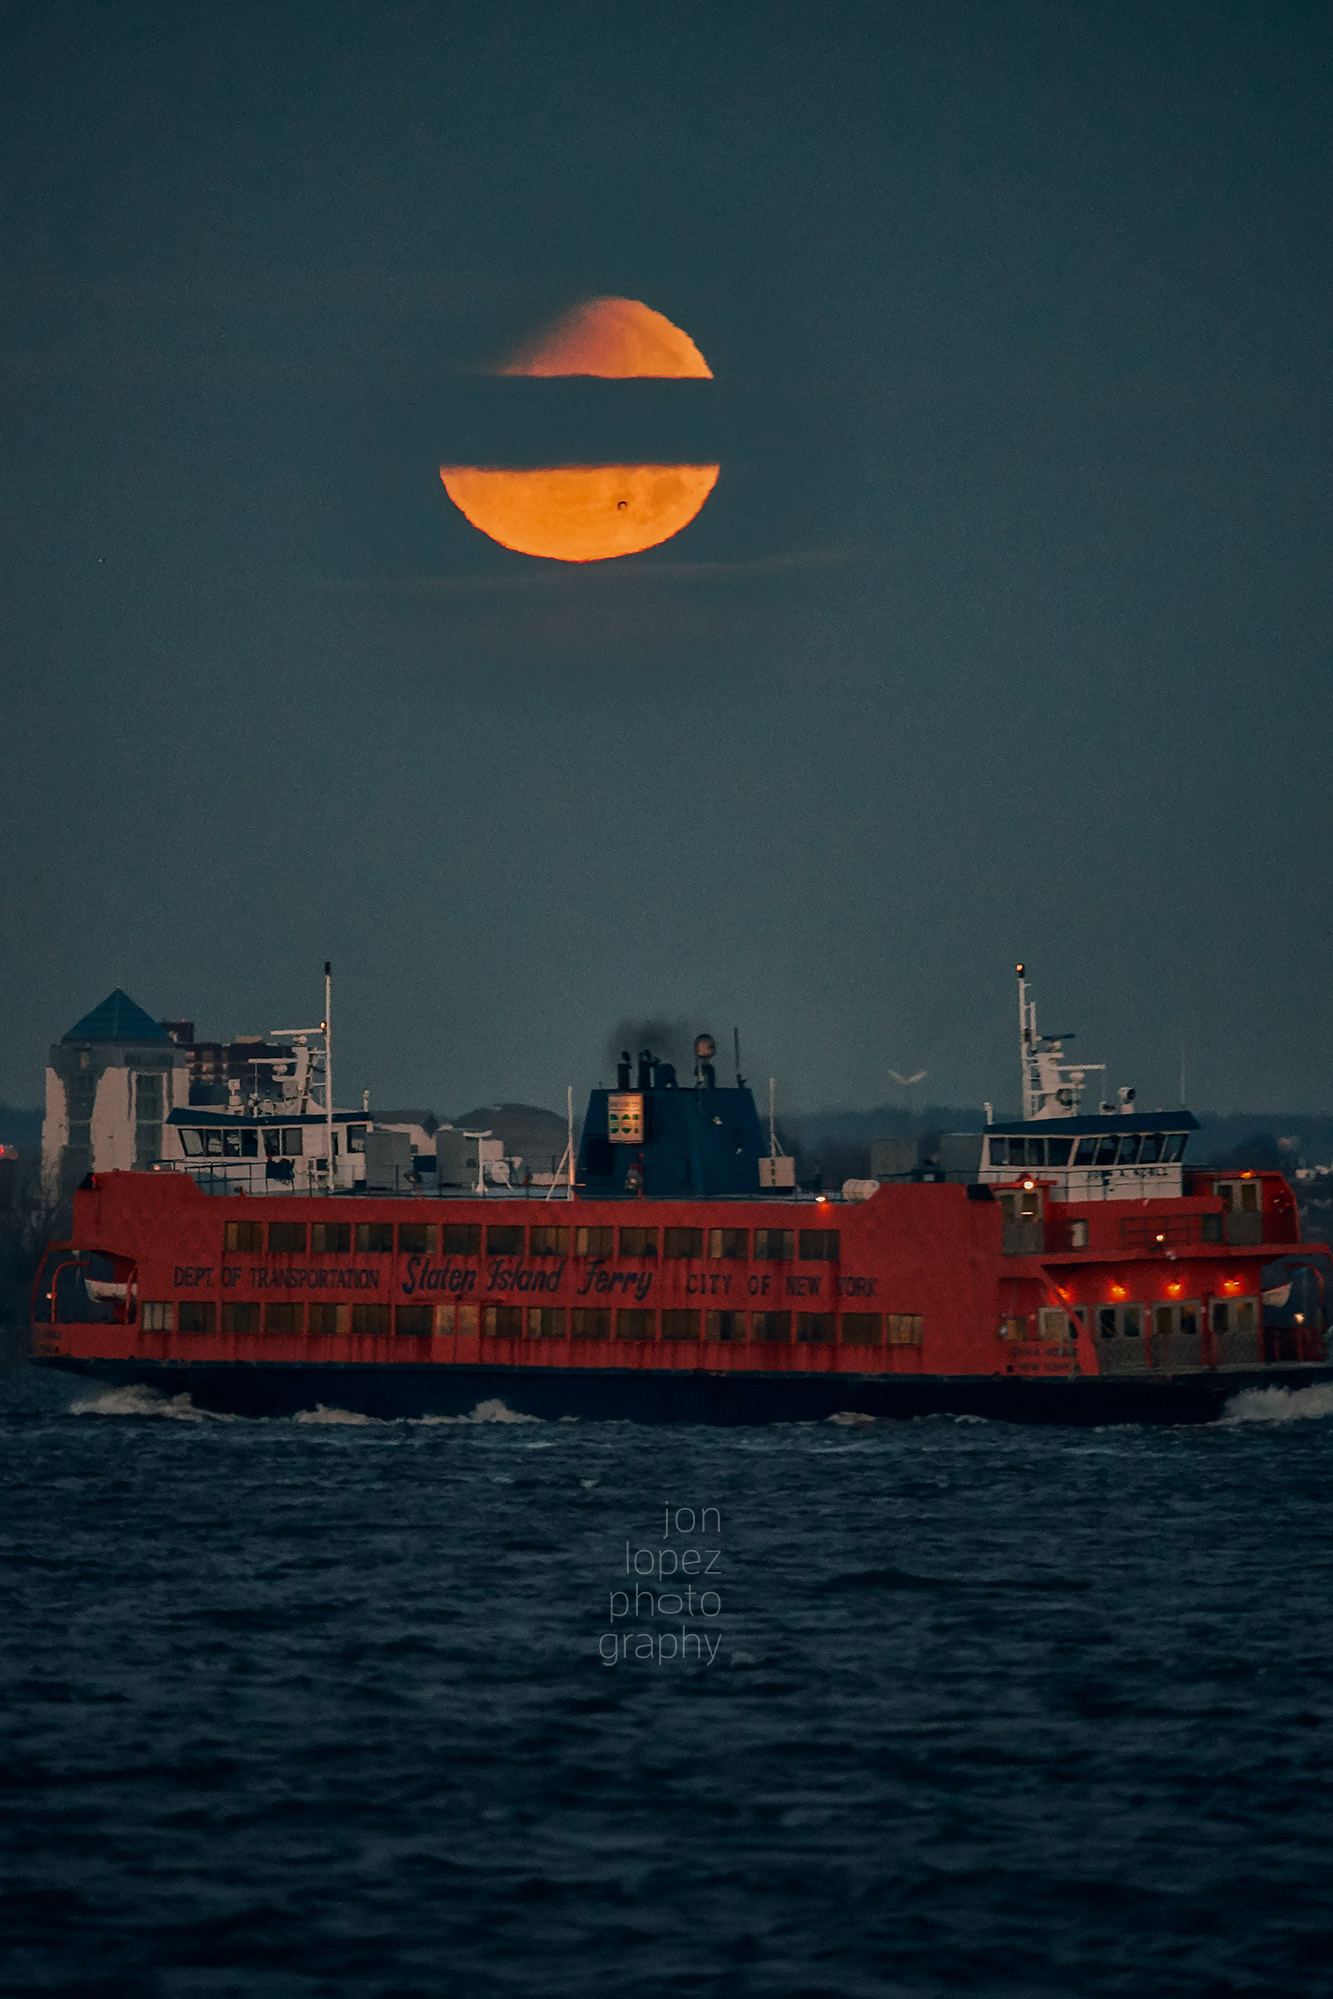 Back on digital, I was able to capture the full ferry, a bird flying in front of the moon, and a cloud cutting straight across the moon. Photo credit: Jonathan Lopez